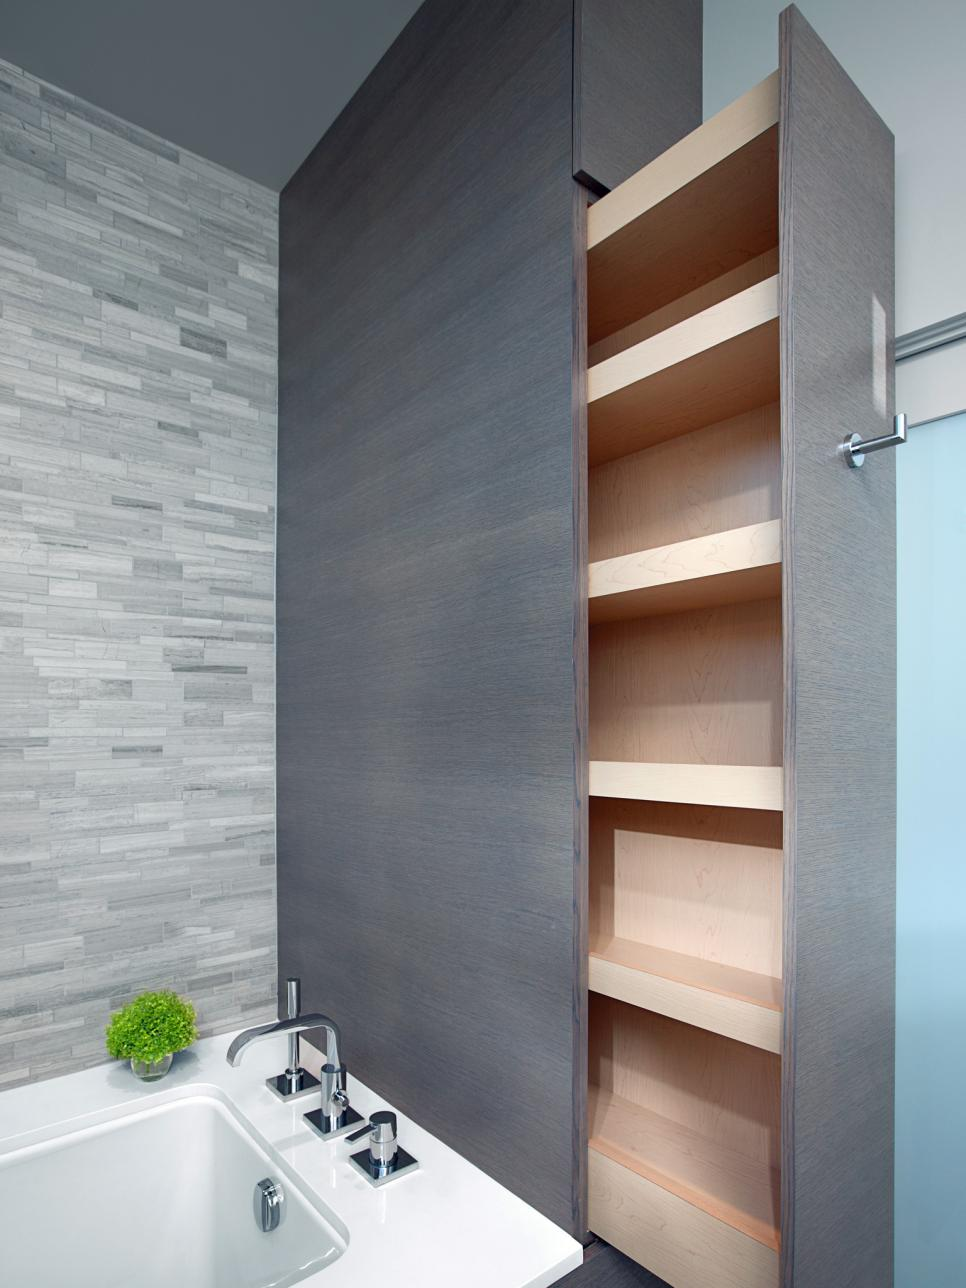 Creative bathroom storage ideas - Creative Bathroom Storage Ideas 16